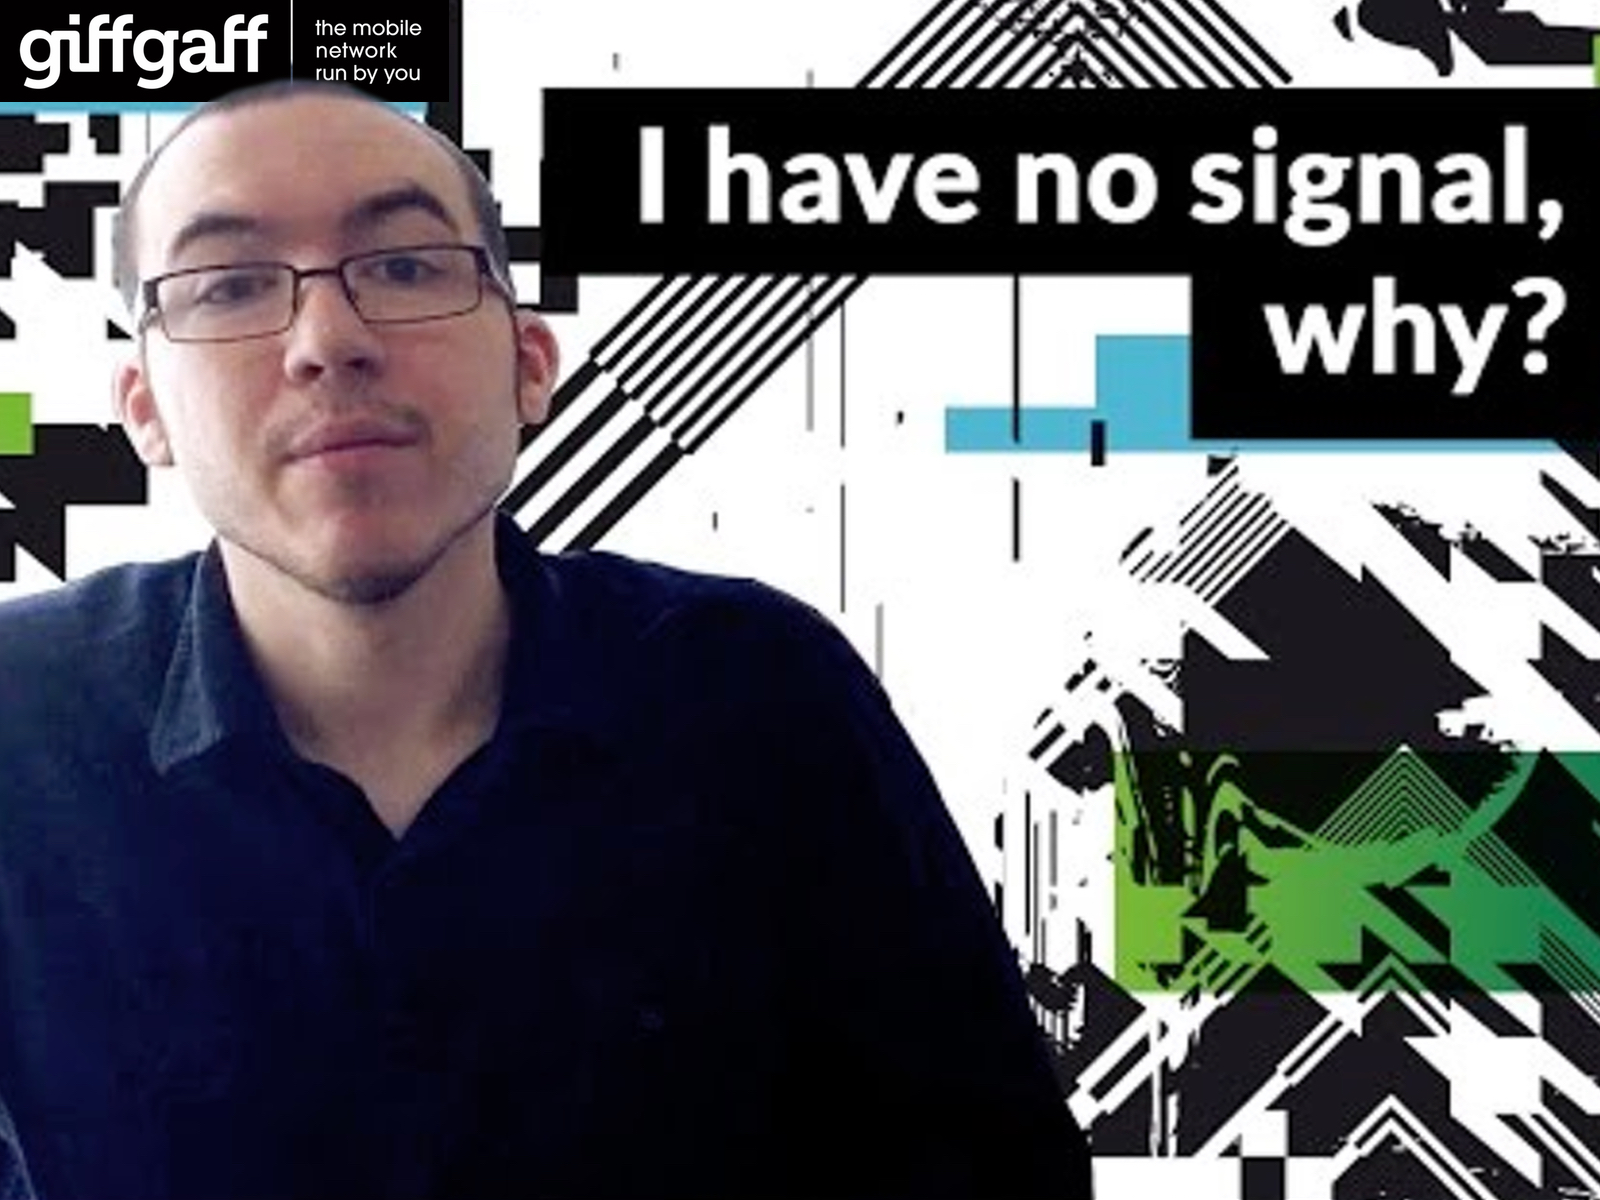 I have no signal, why? | giffgaff